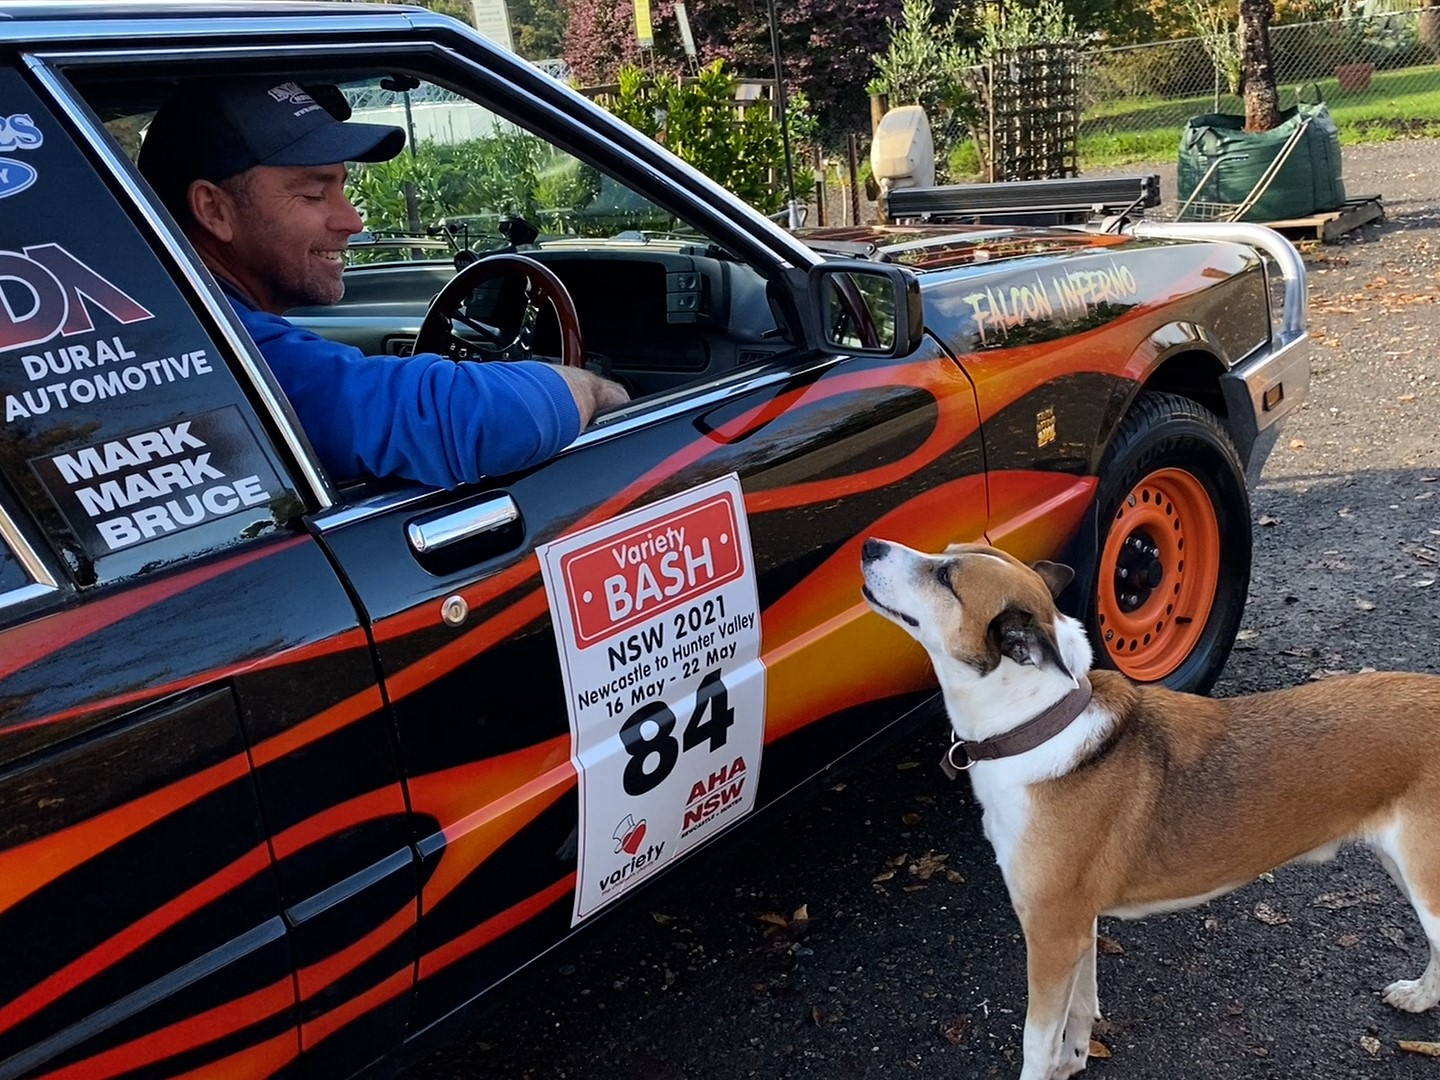 Mark Engall farewells his dog Reggie before taking part in the 2021 Variety Bash